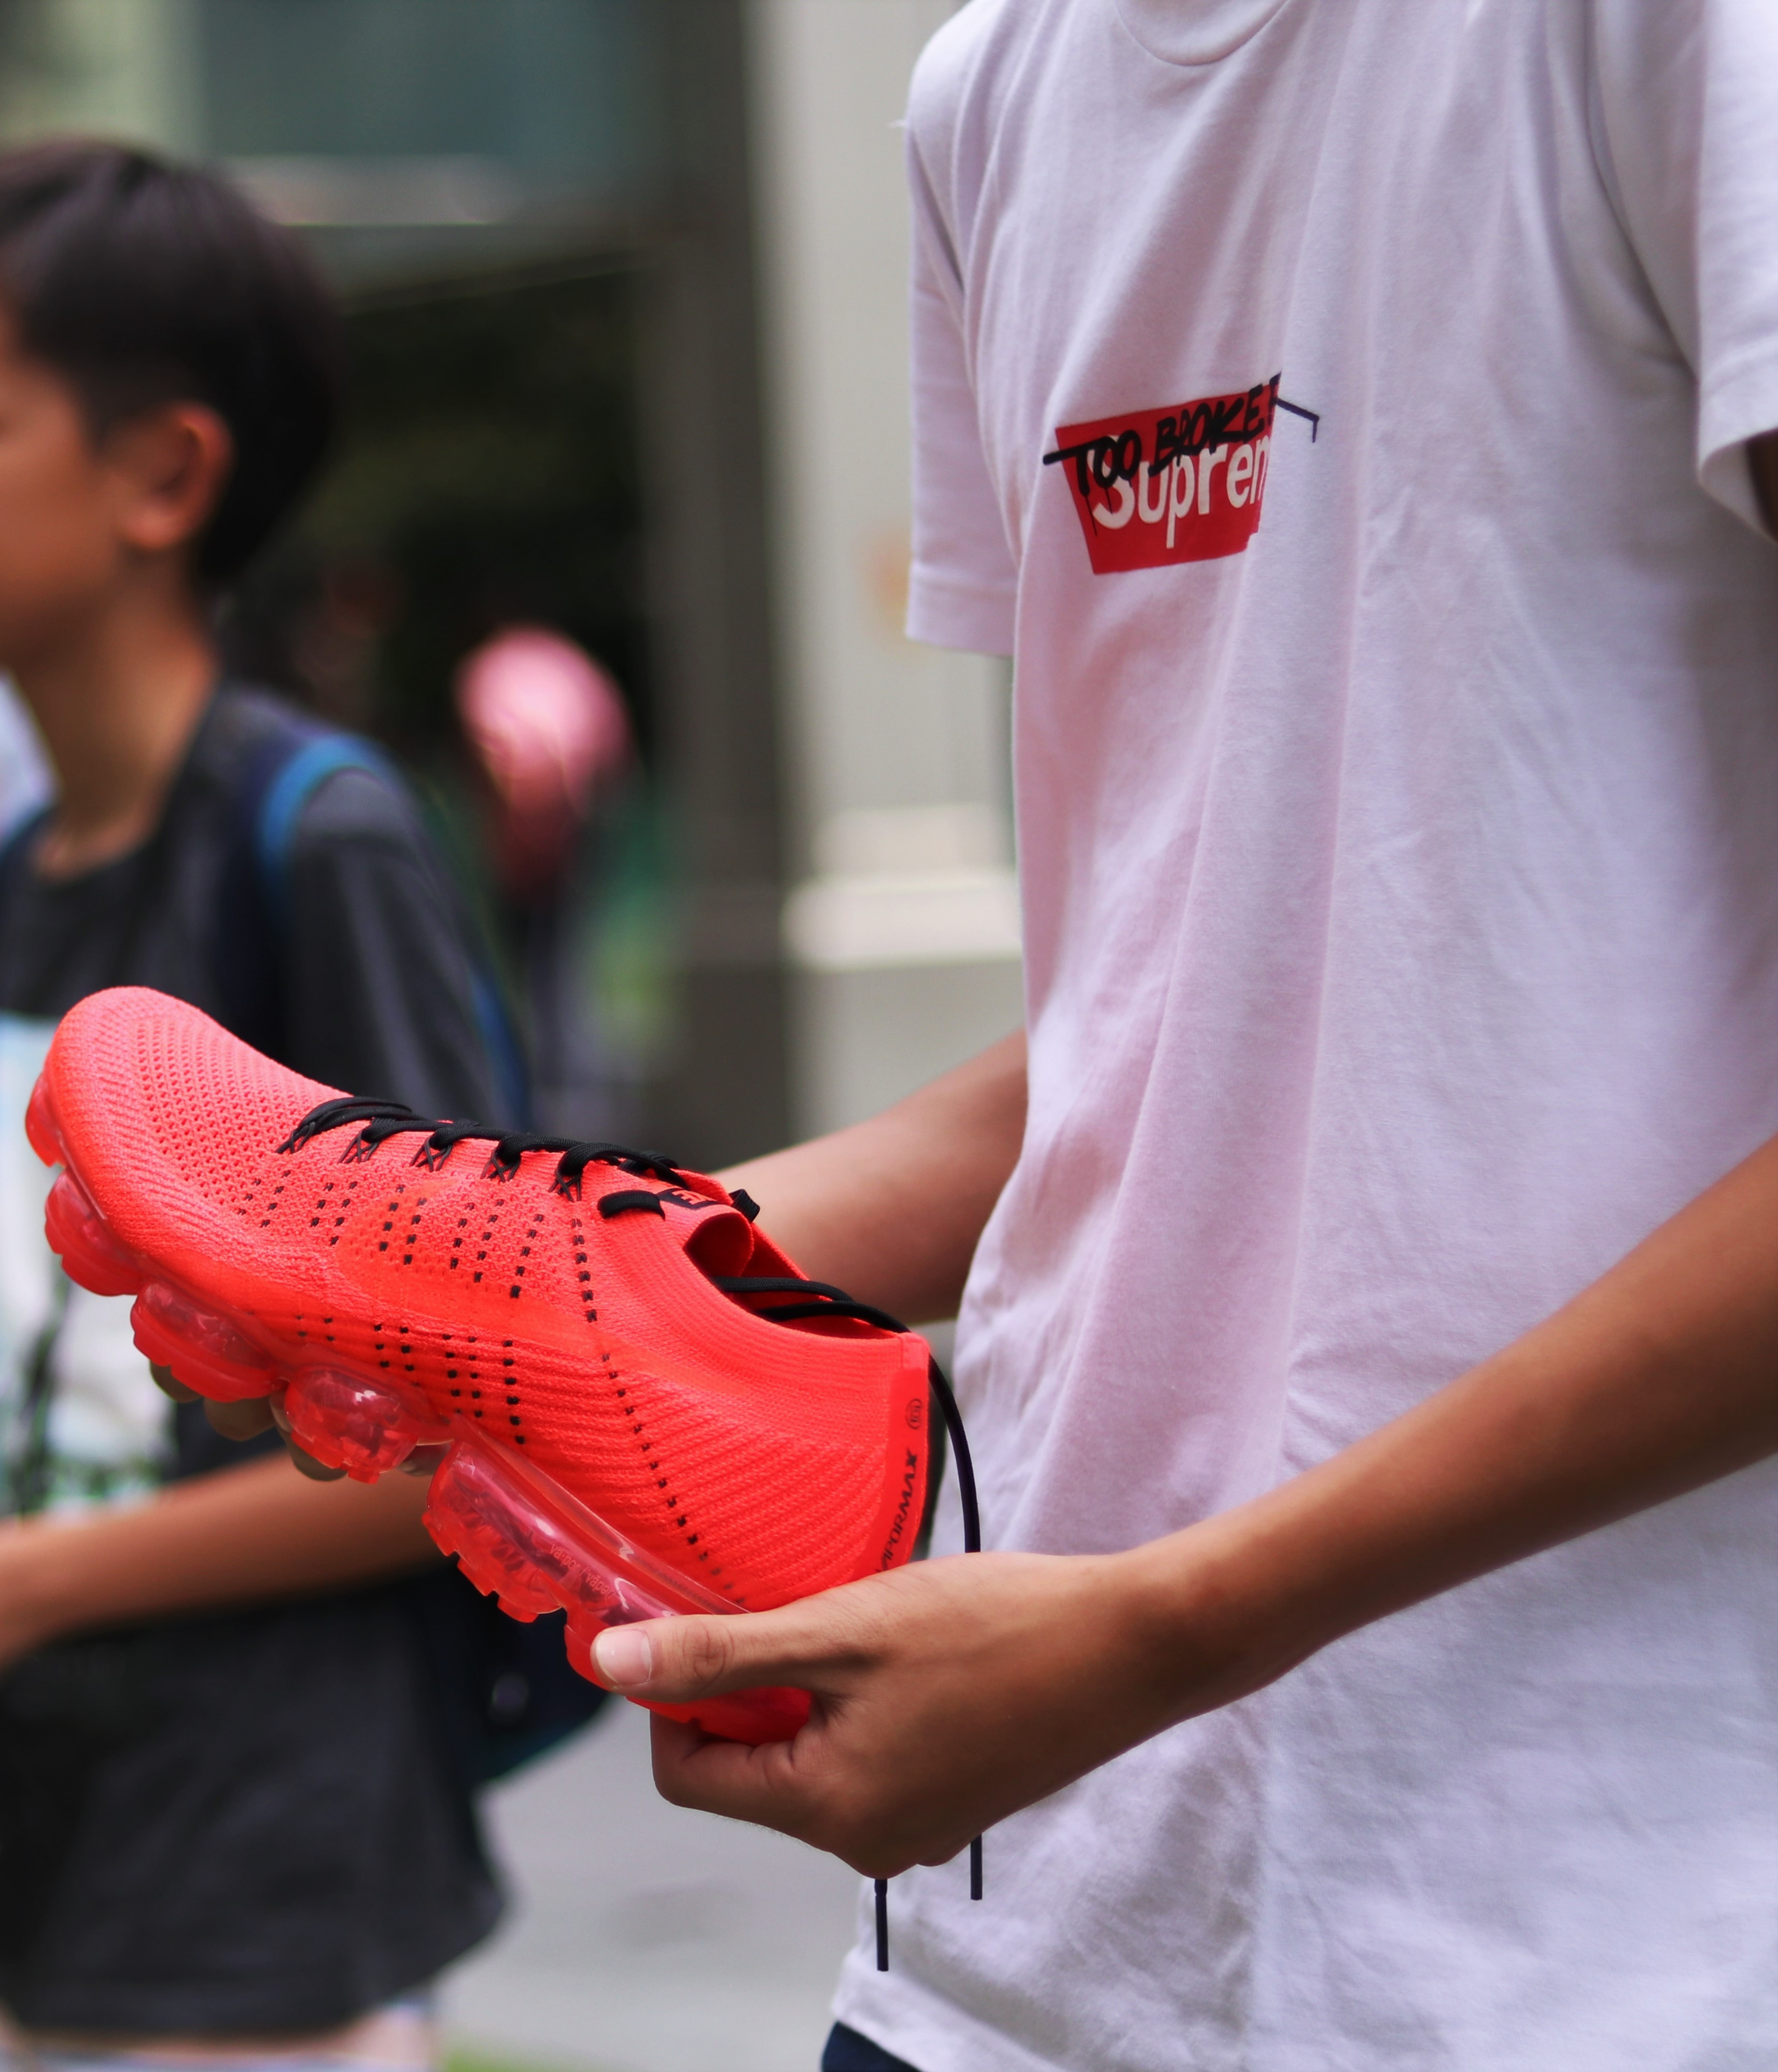 A person wearing a t-shirt that says Supreme holds a red sneaker with black laces